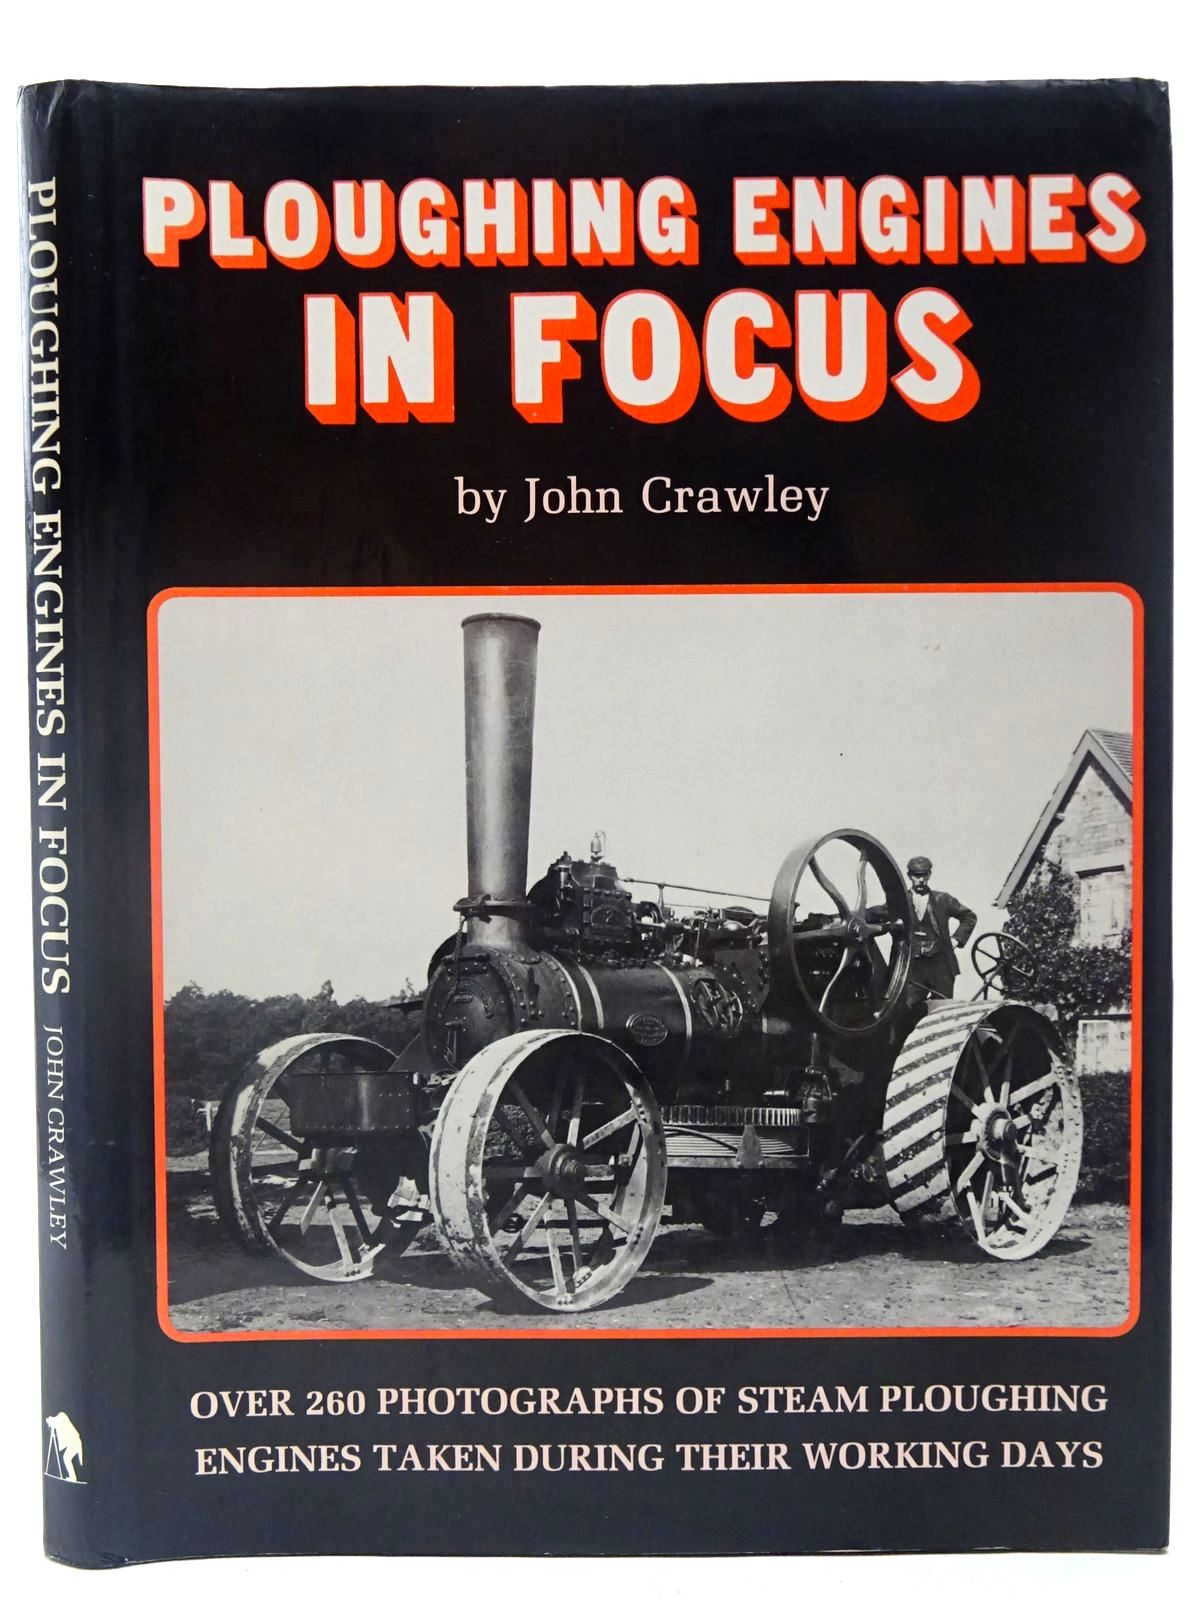 Rare books, collectible books & 2nd hand STEAM ENGINES books